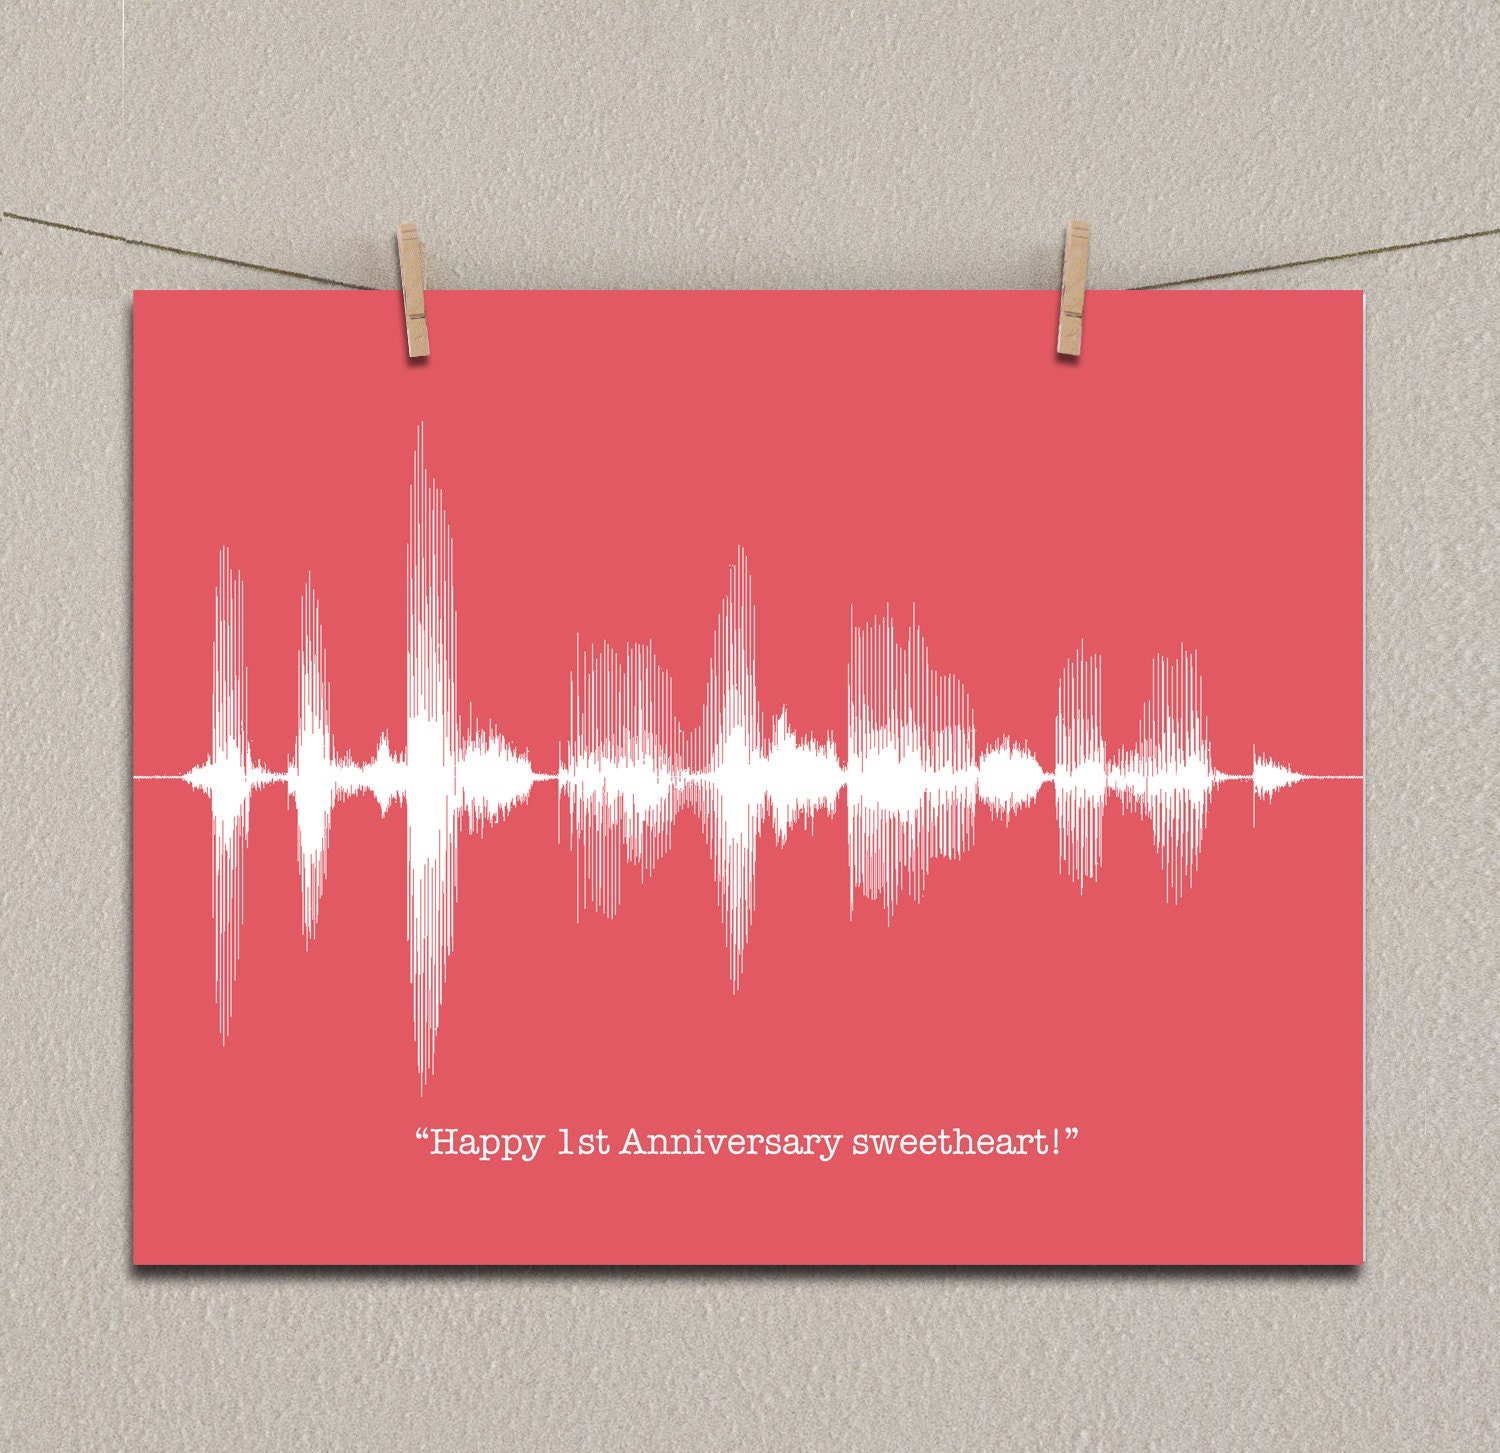 Happy anniversary personalized message by